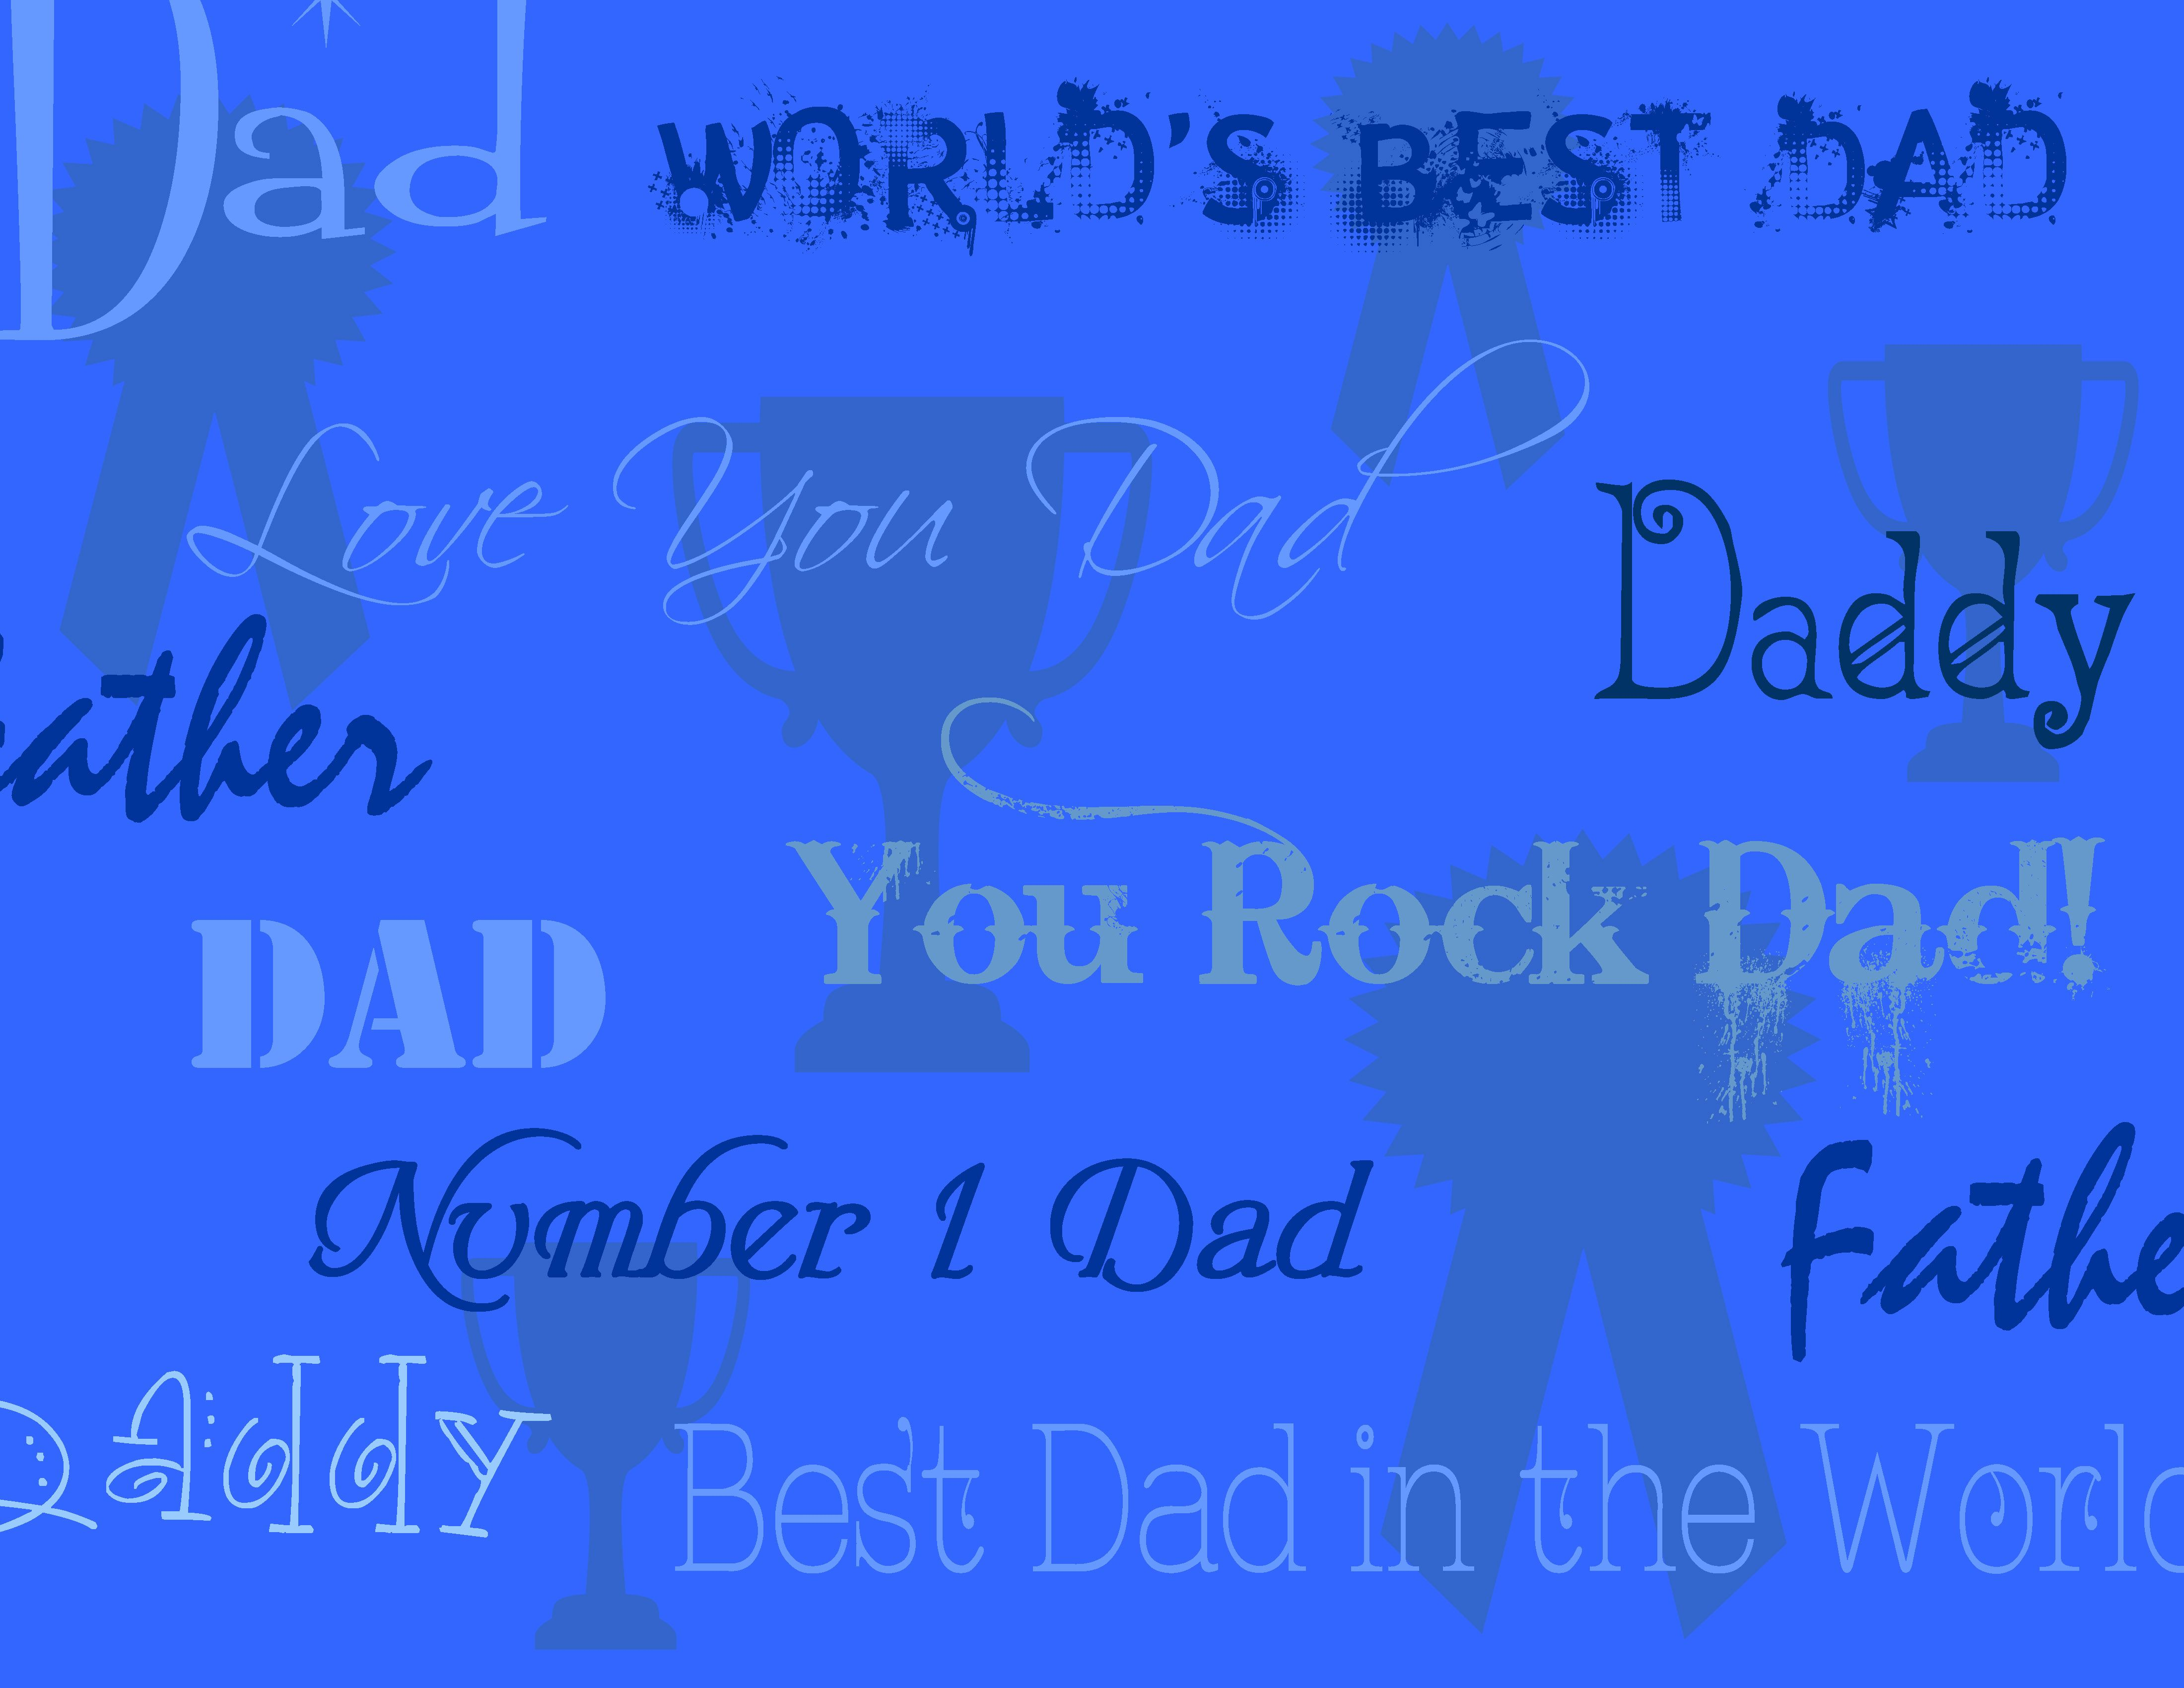 Fathers Day Background Best Dad In The World